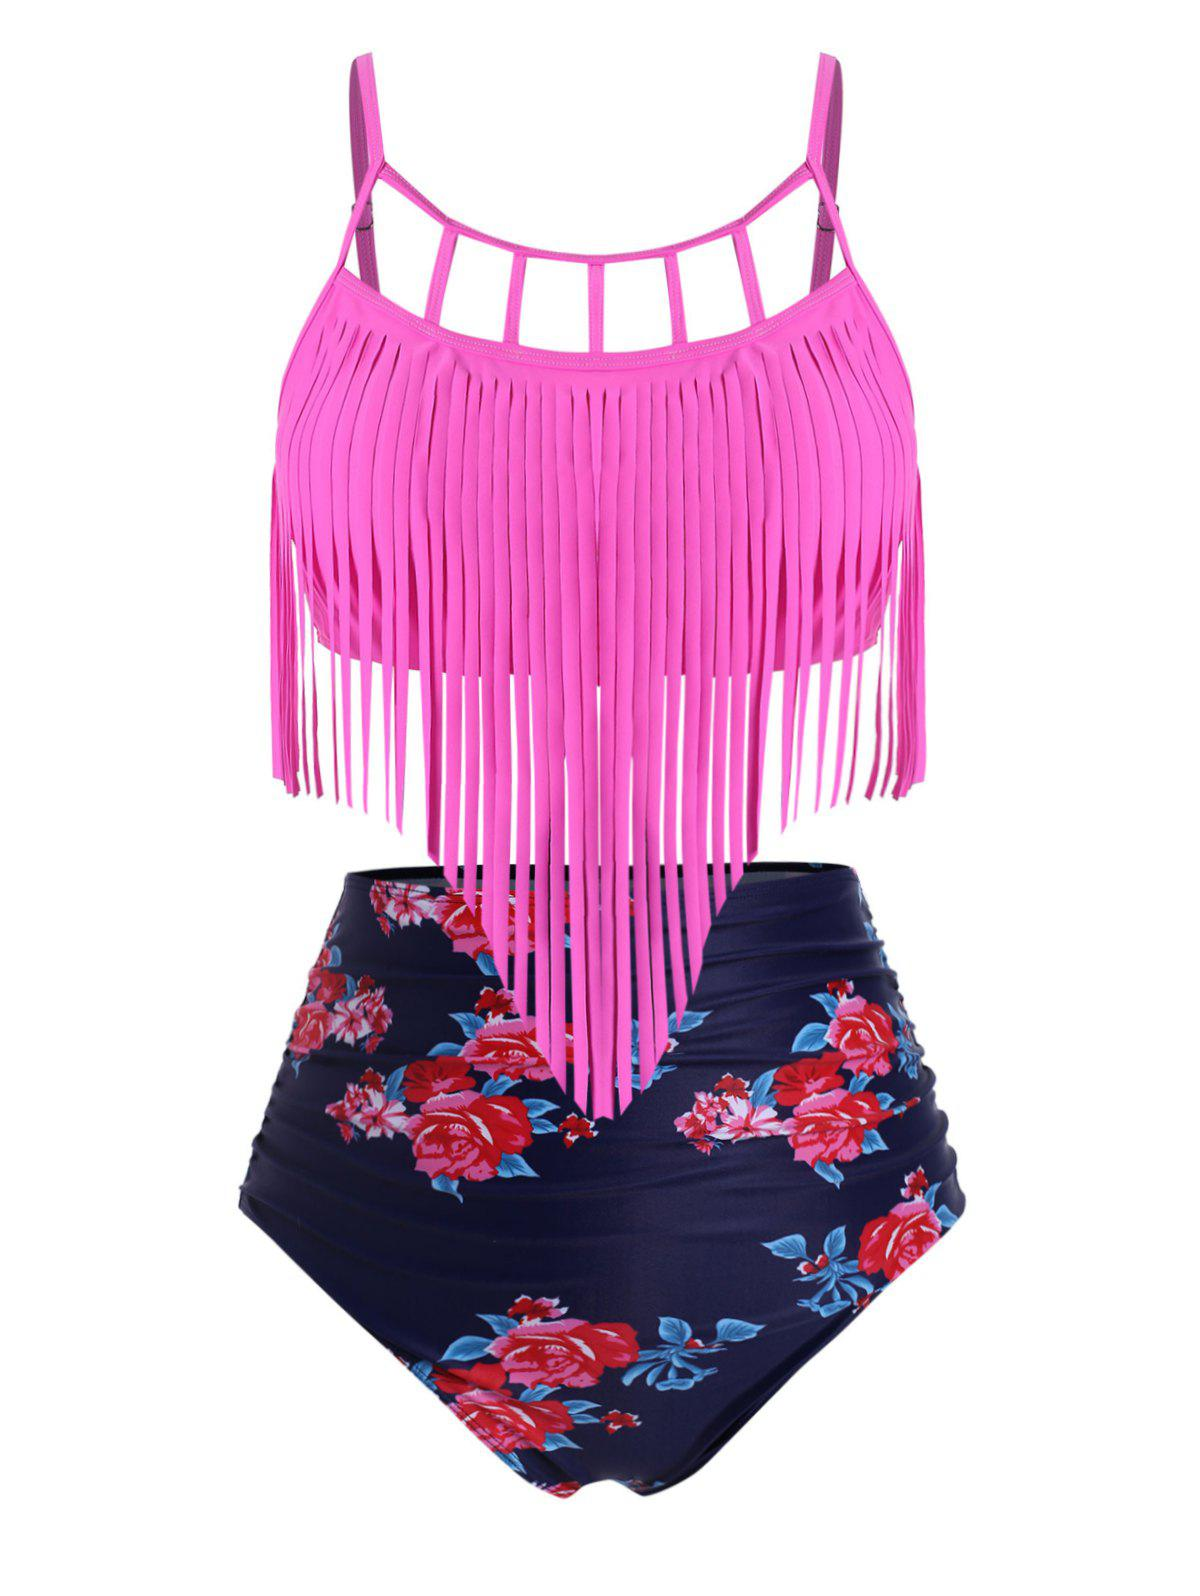 Affordable Ruched Fringed Floral High Waisted Plus Size Tankini Swimsuit